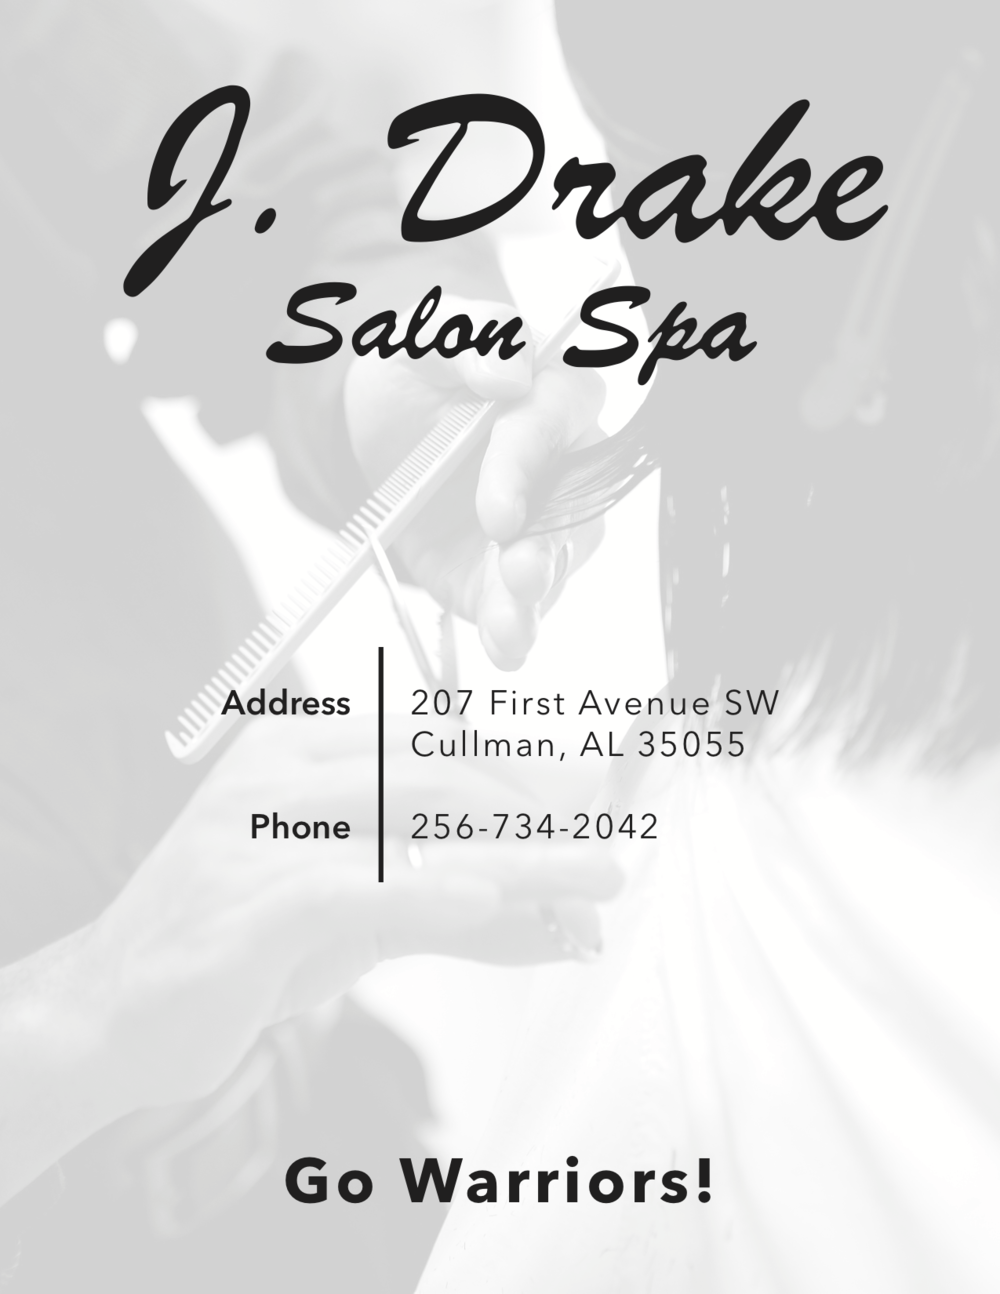 Page 88 - J Drake Salon Spa-v2.png